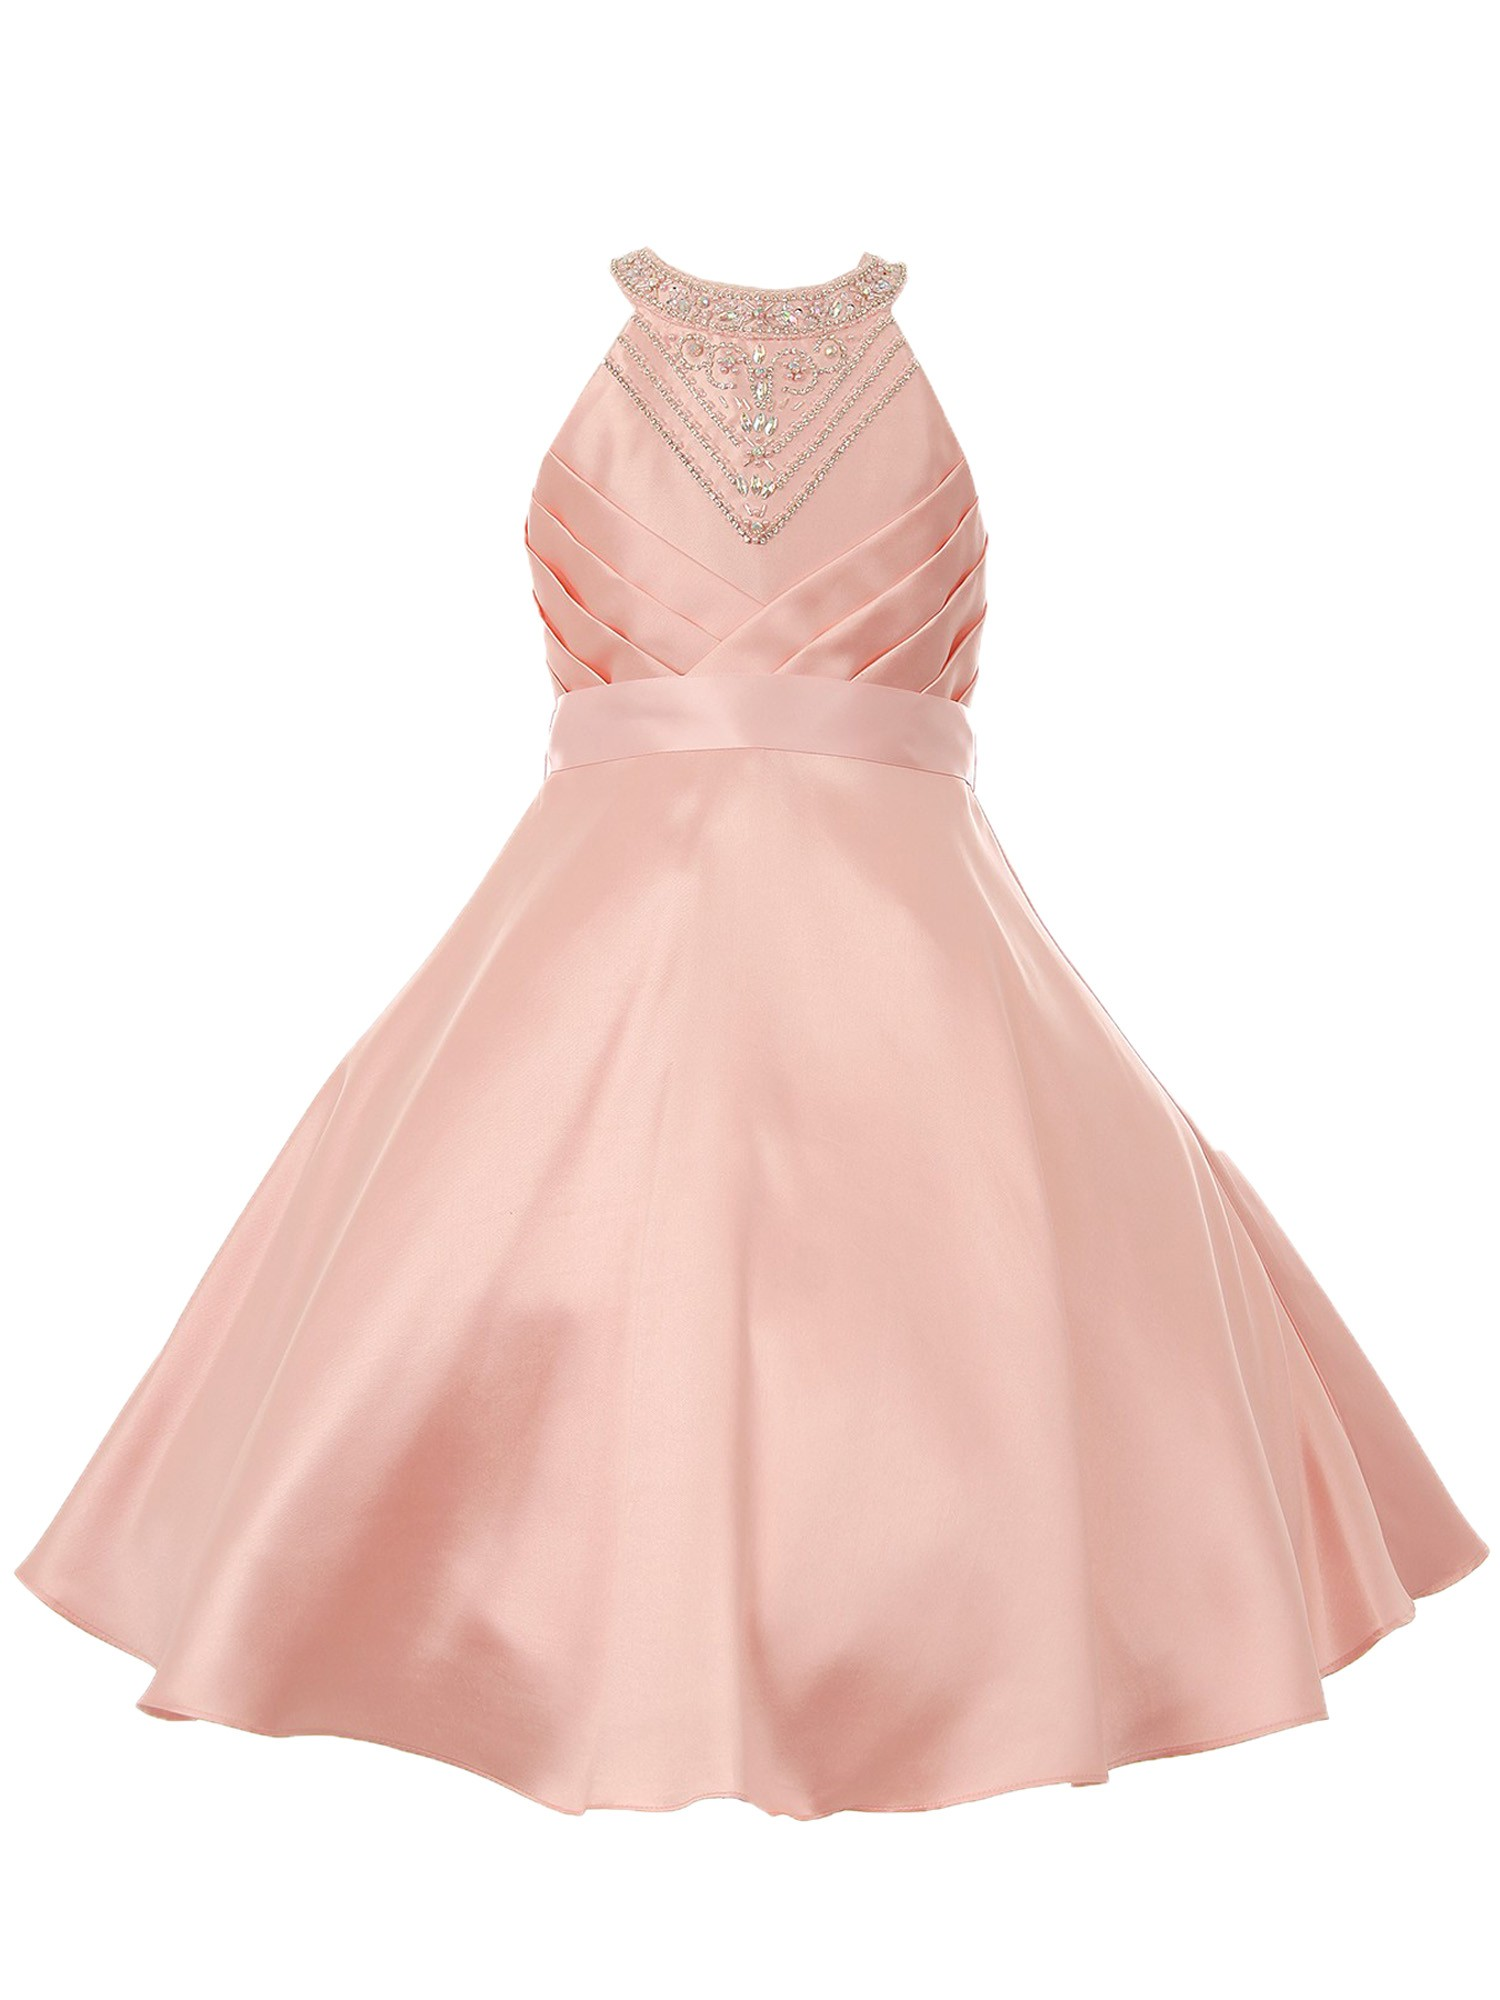 d08c3a088d0 Little Girls Blush Side Pleated Rhinestone Halter Flower Girl Dress 2 -  Sophia s Style